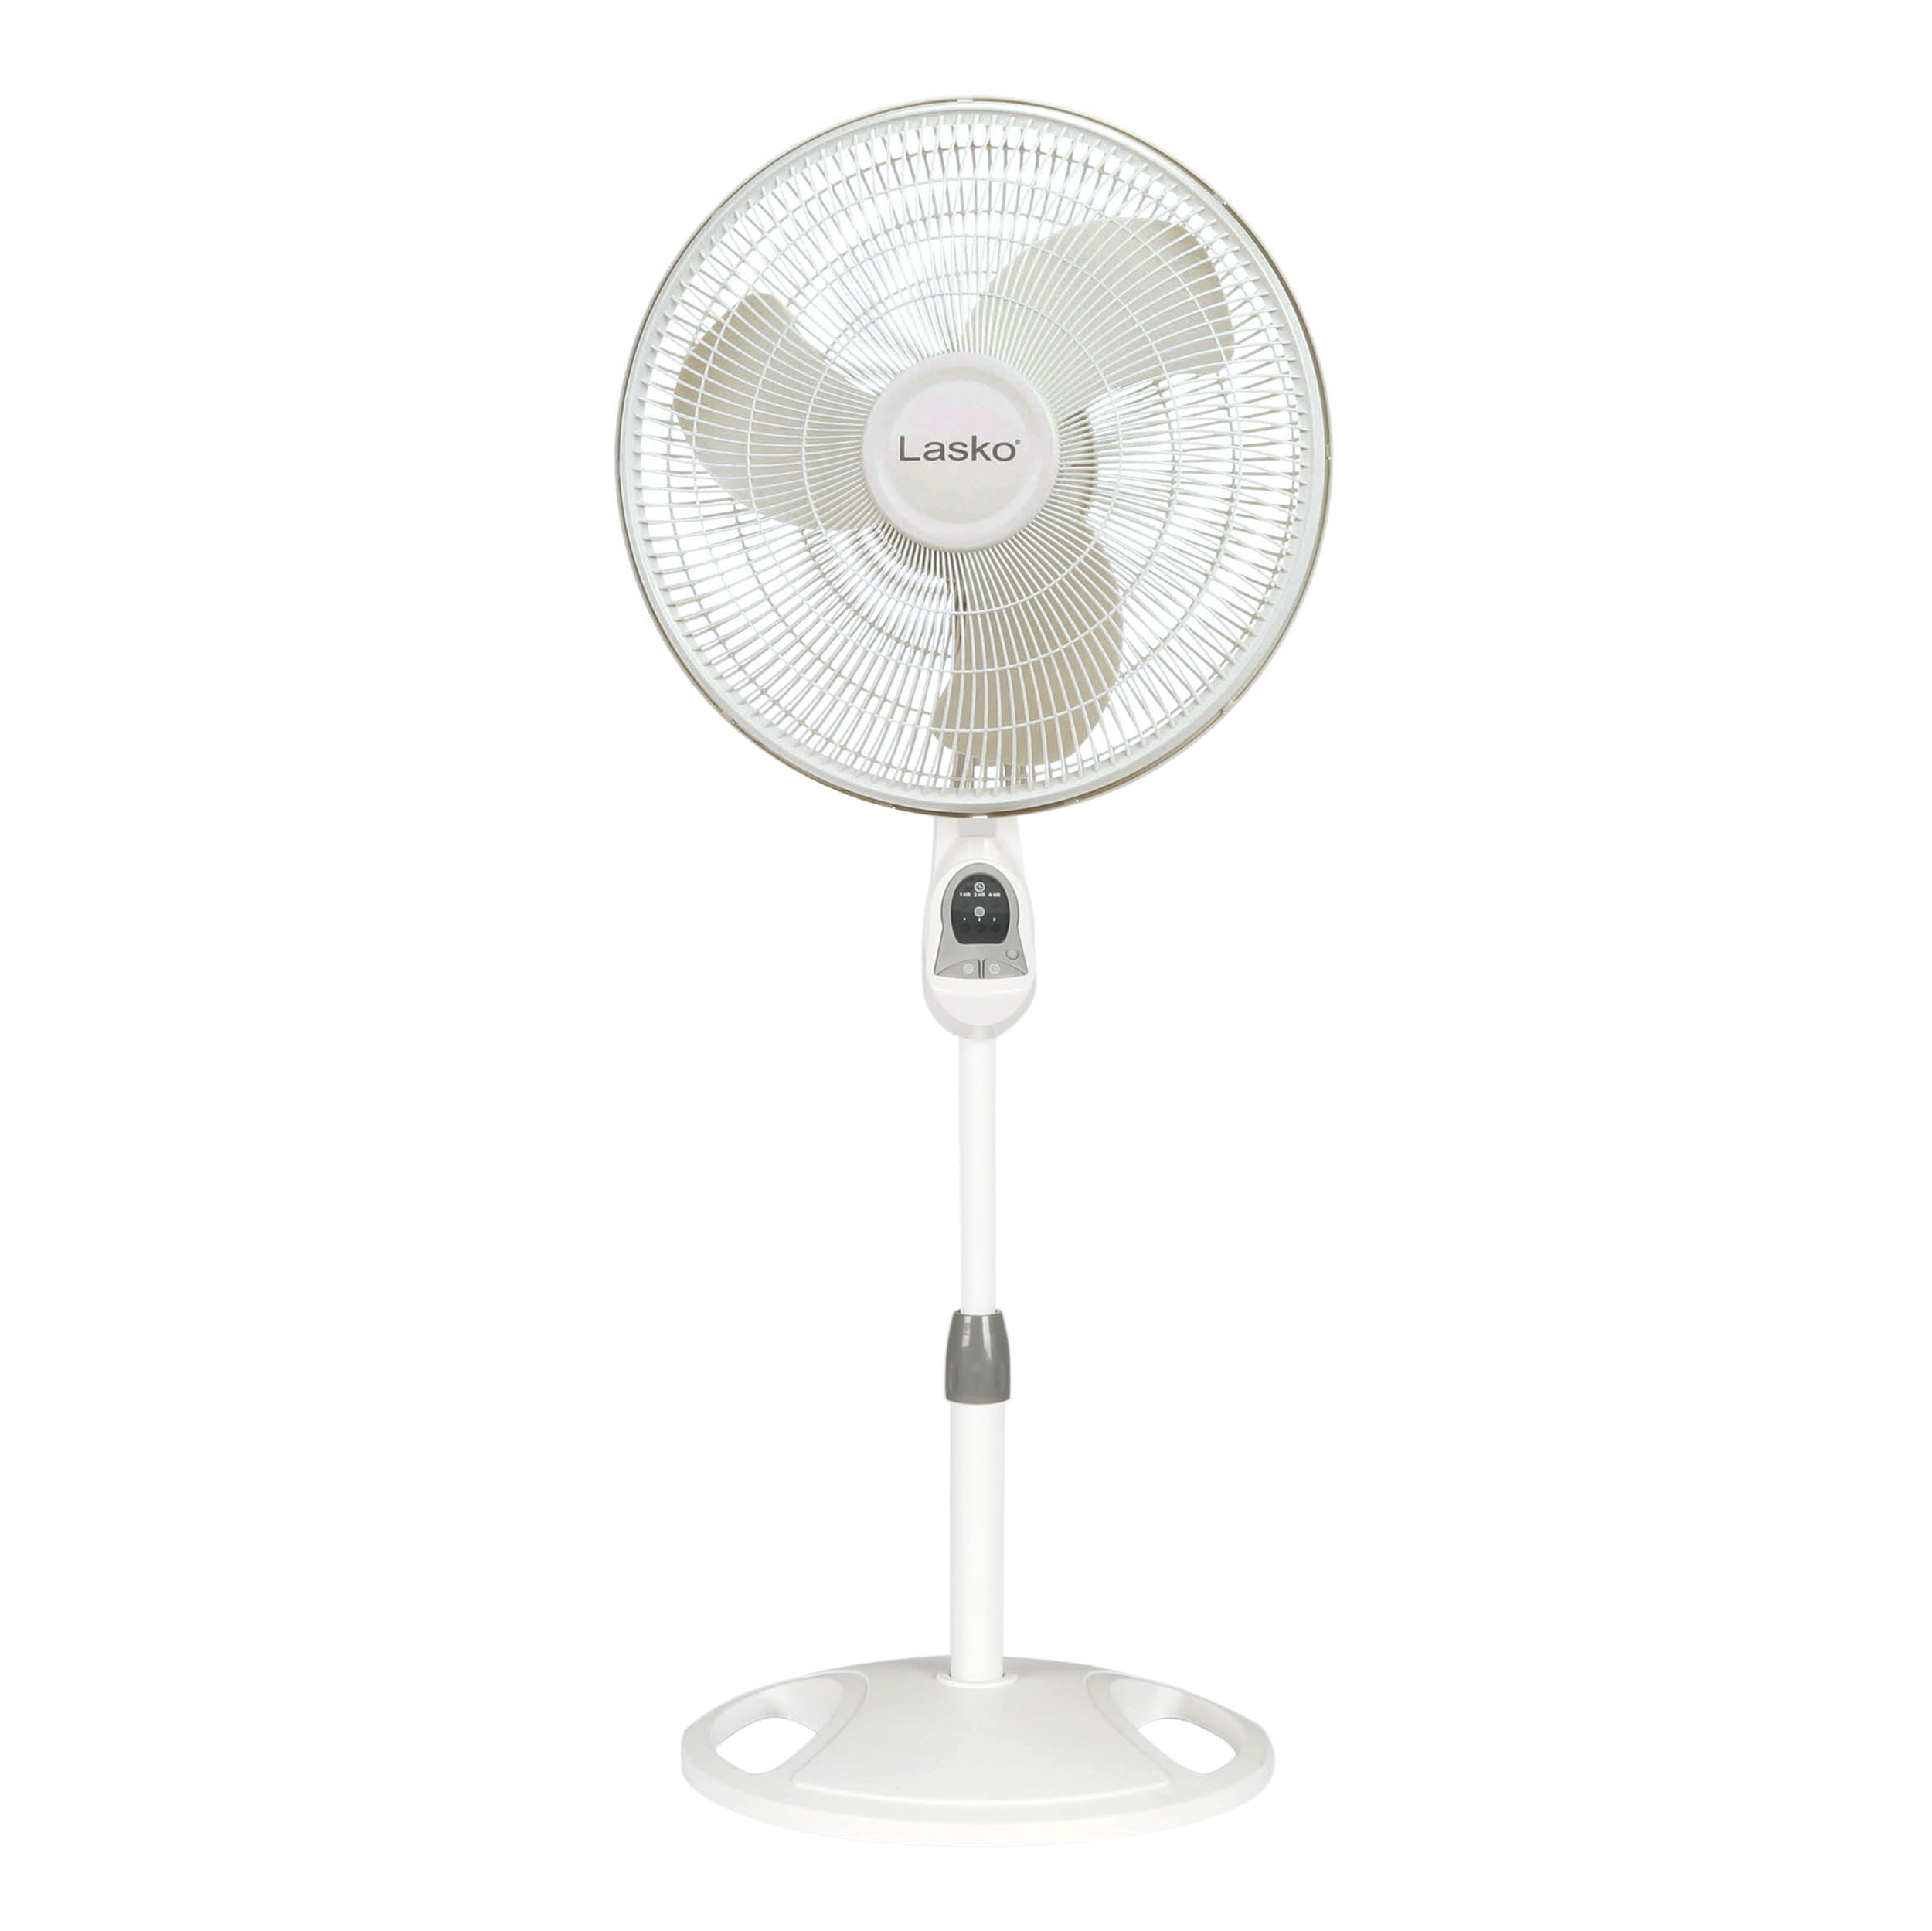 Lasko 2520 16/″ Oscillating Stand Fan Tilt-Back Fan Head Features Adjustable Height Oscillating Movement